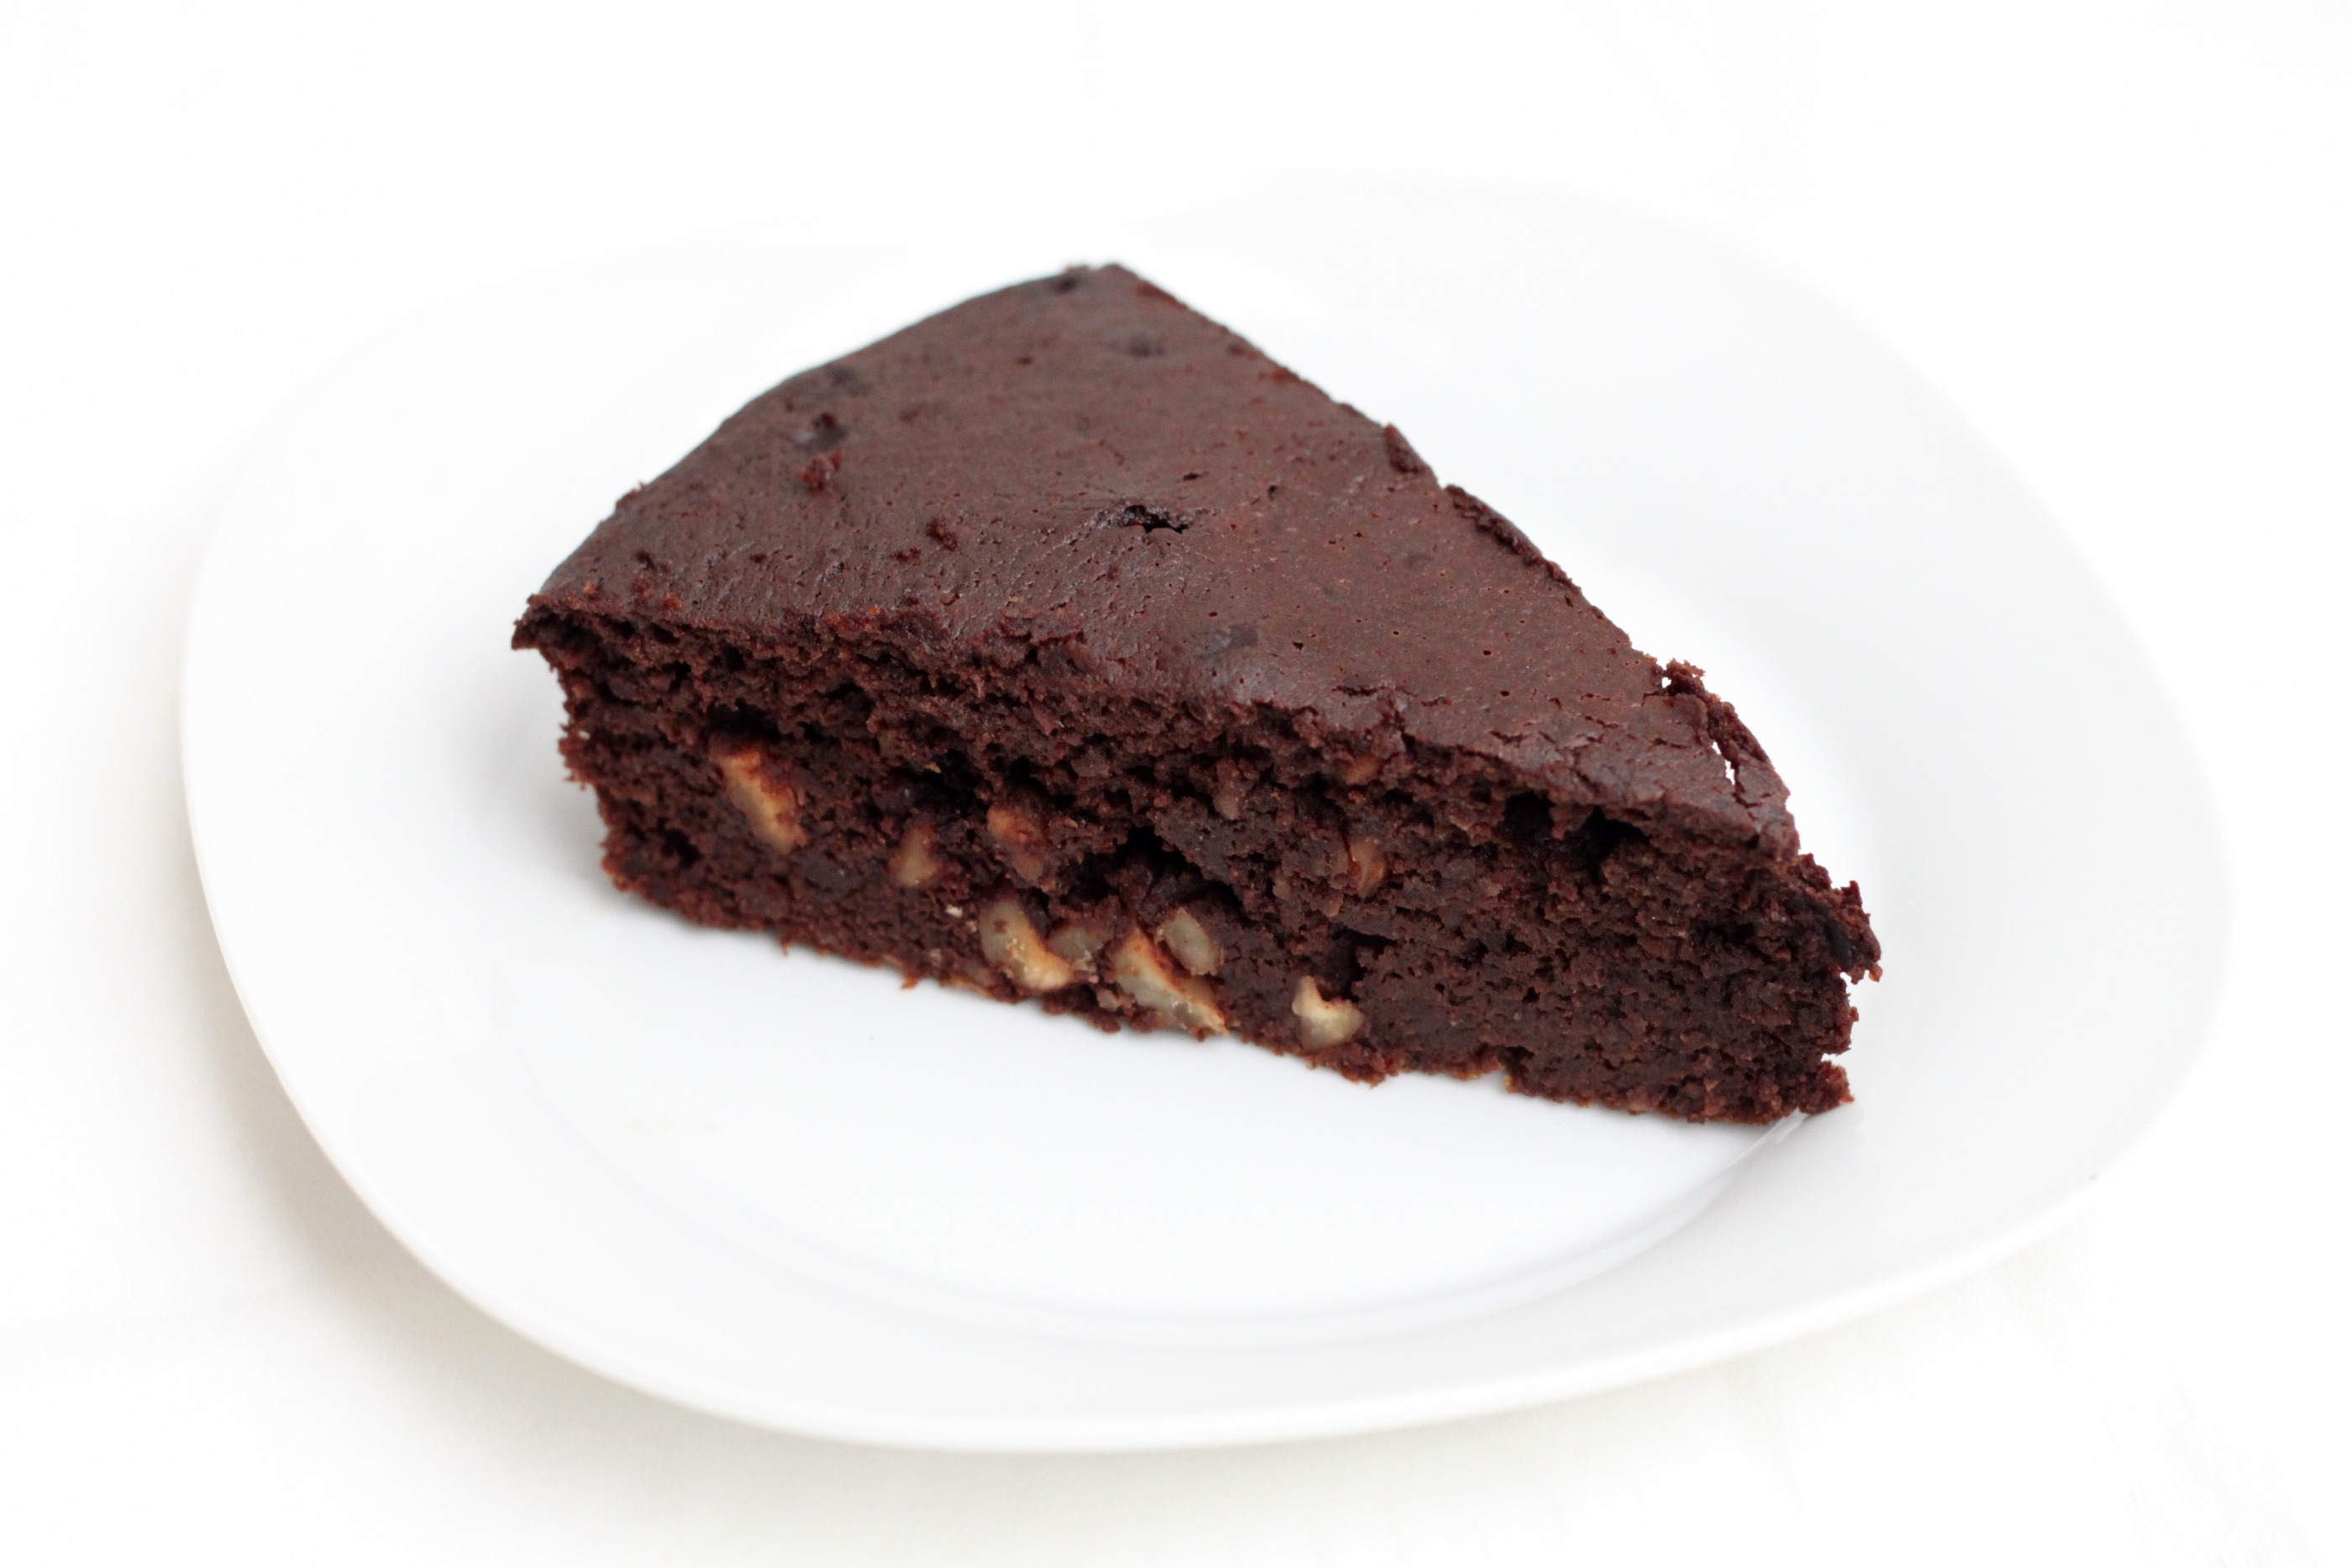 Nut and chocolate cake recipe